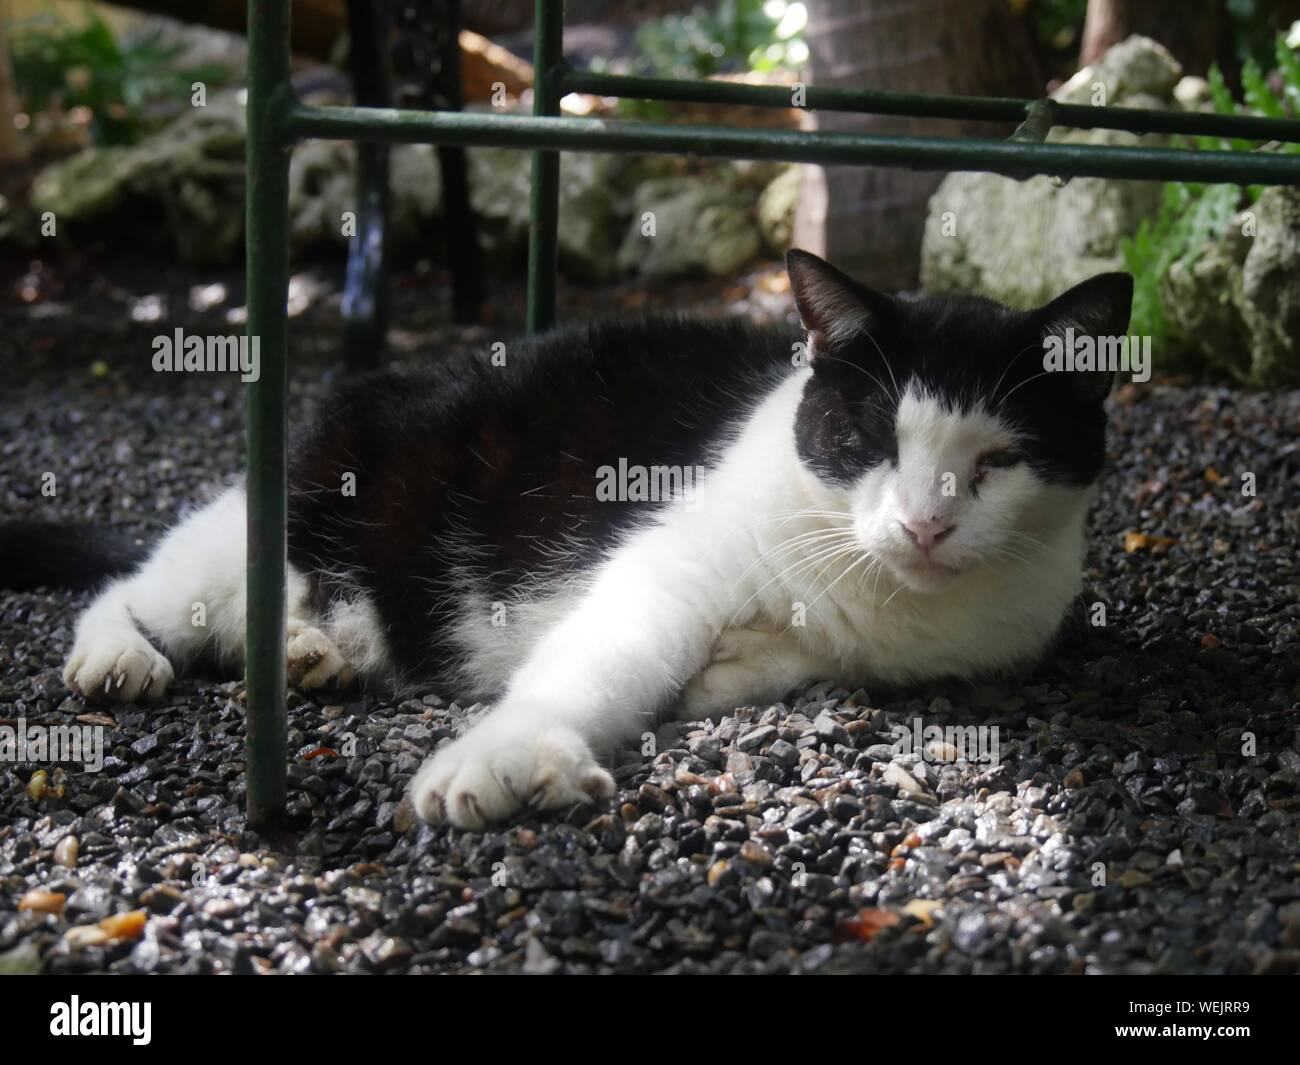 A six-toed black and white cat at the Hemingway house in Key West, Florida. Stock Photo